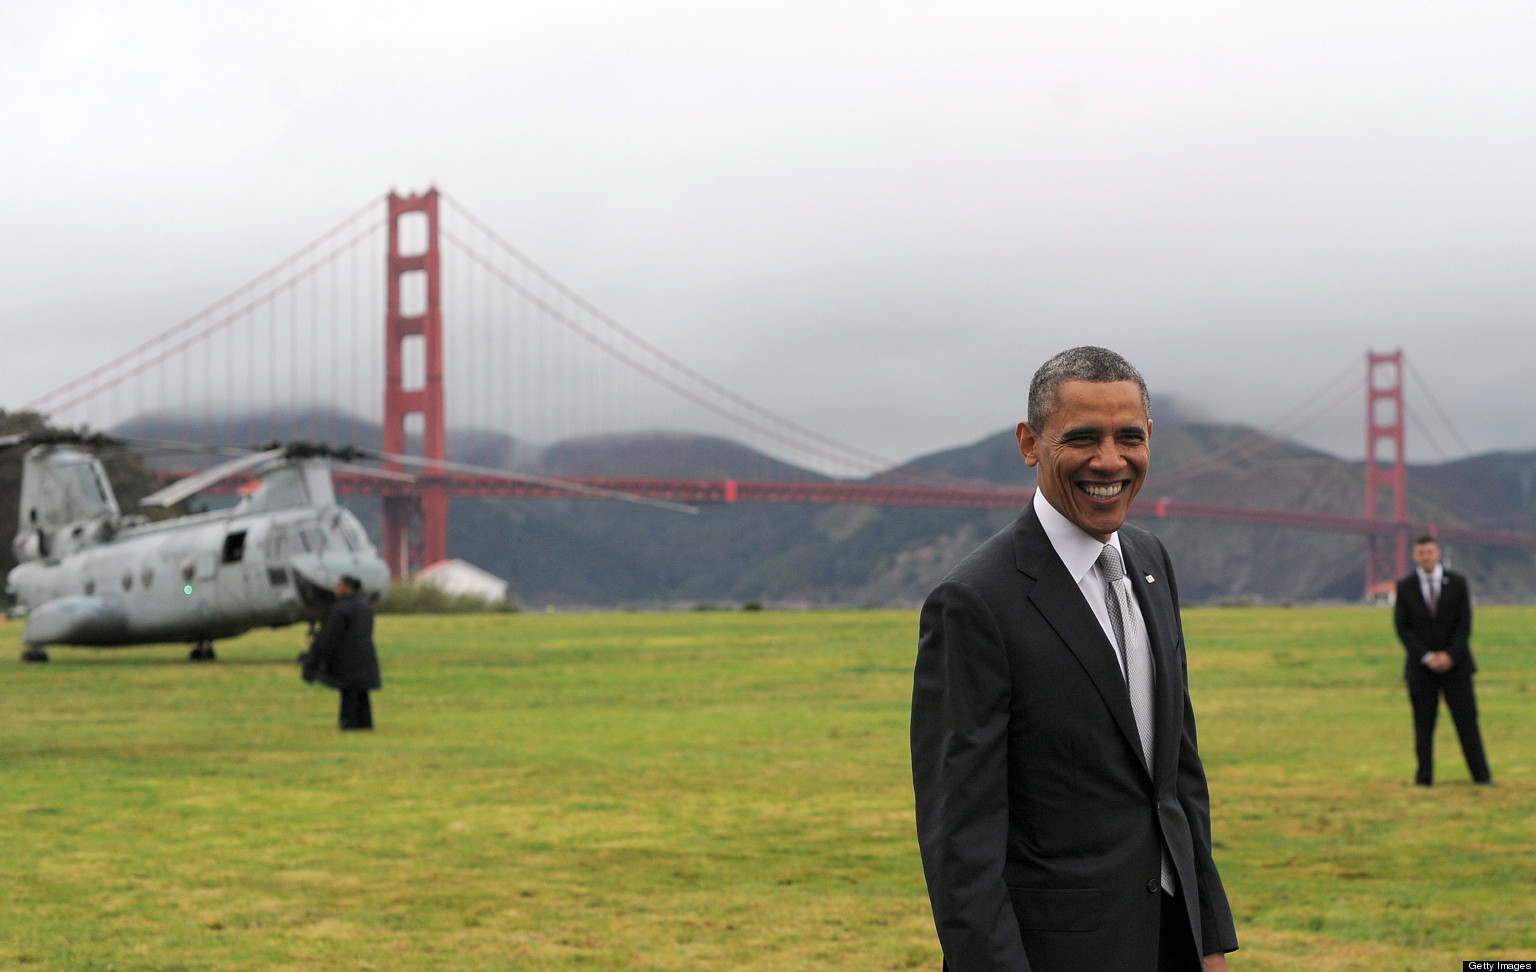 http://i.huffpost.com/gen/1073661/images/o-OBAMA-GOLDEN-GATE-BRIDGE-facebook.jpg